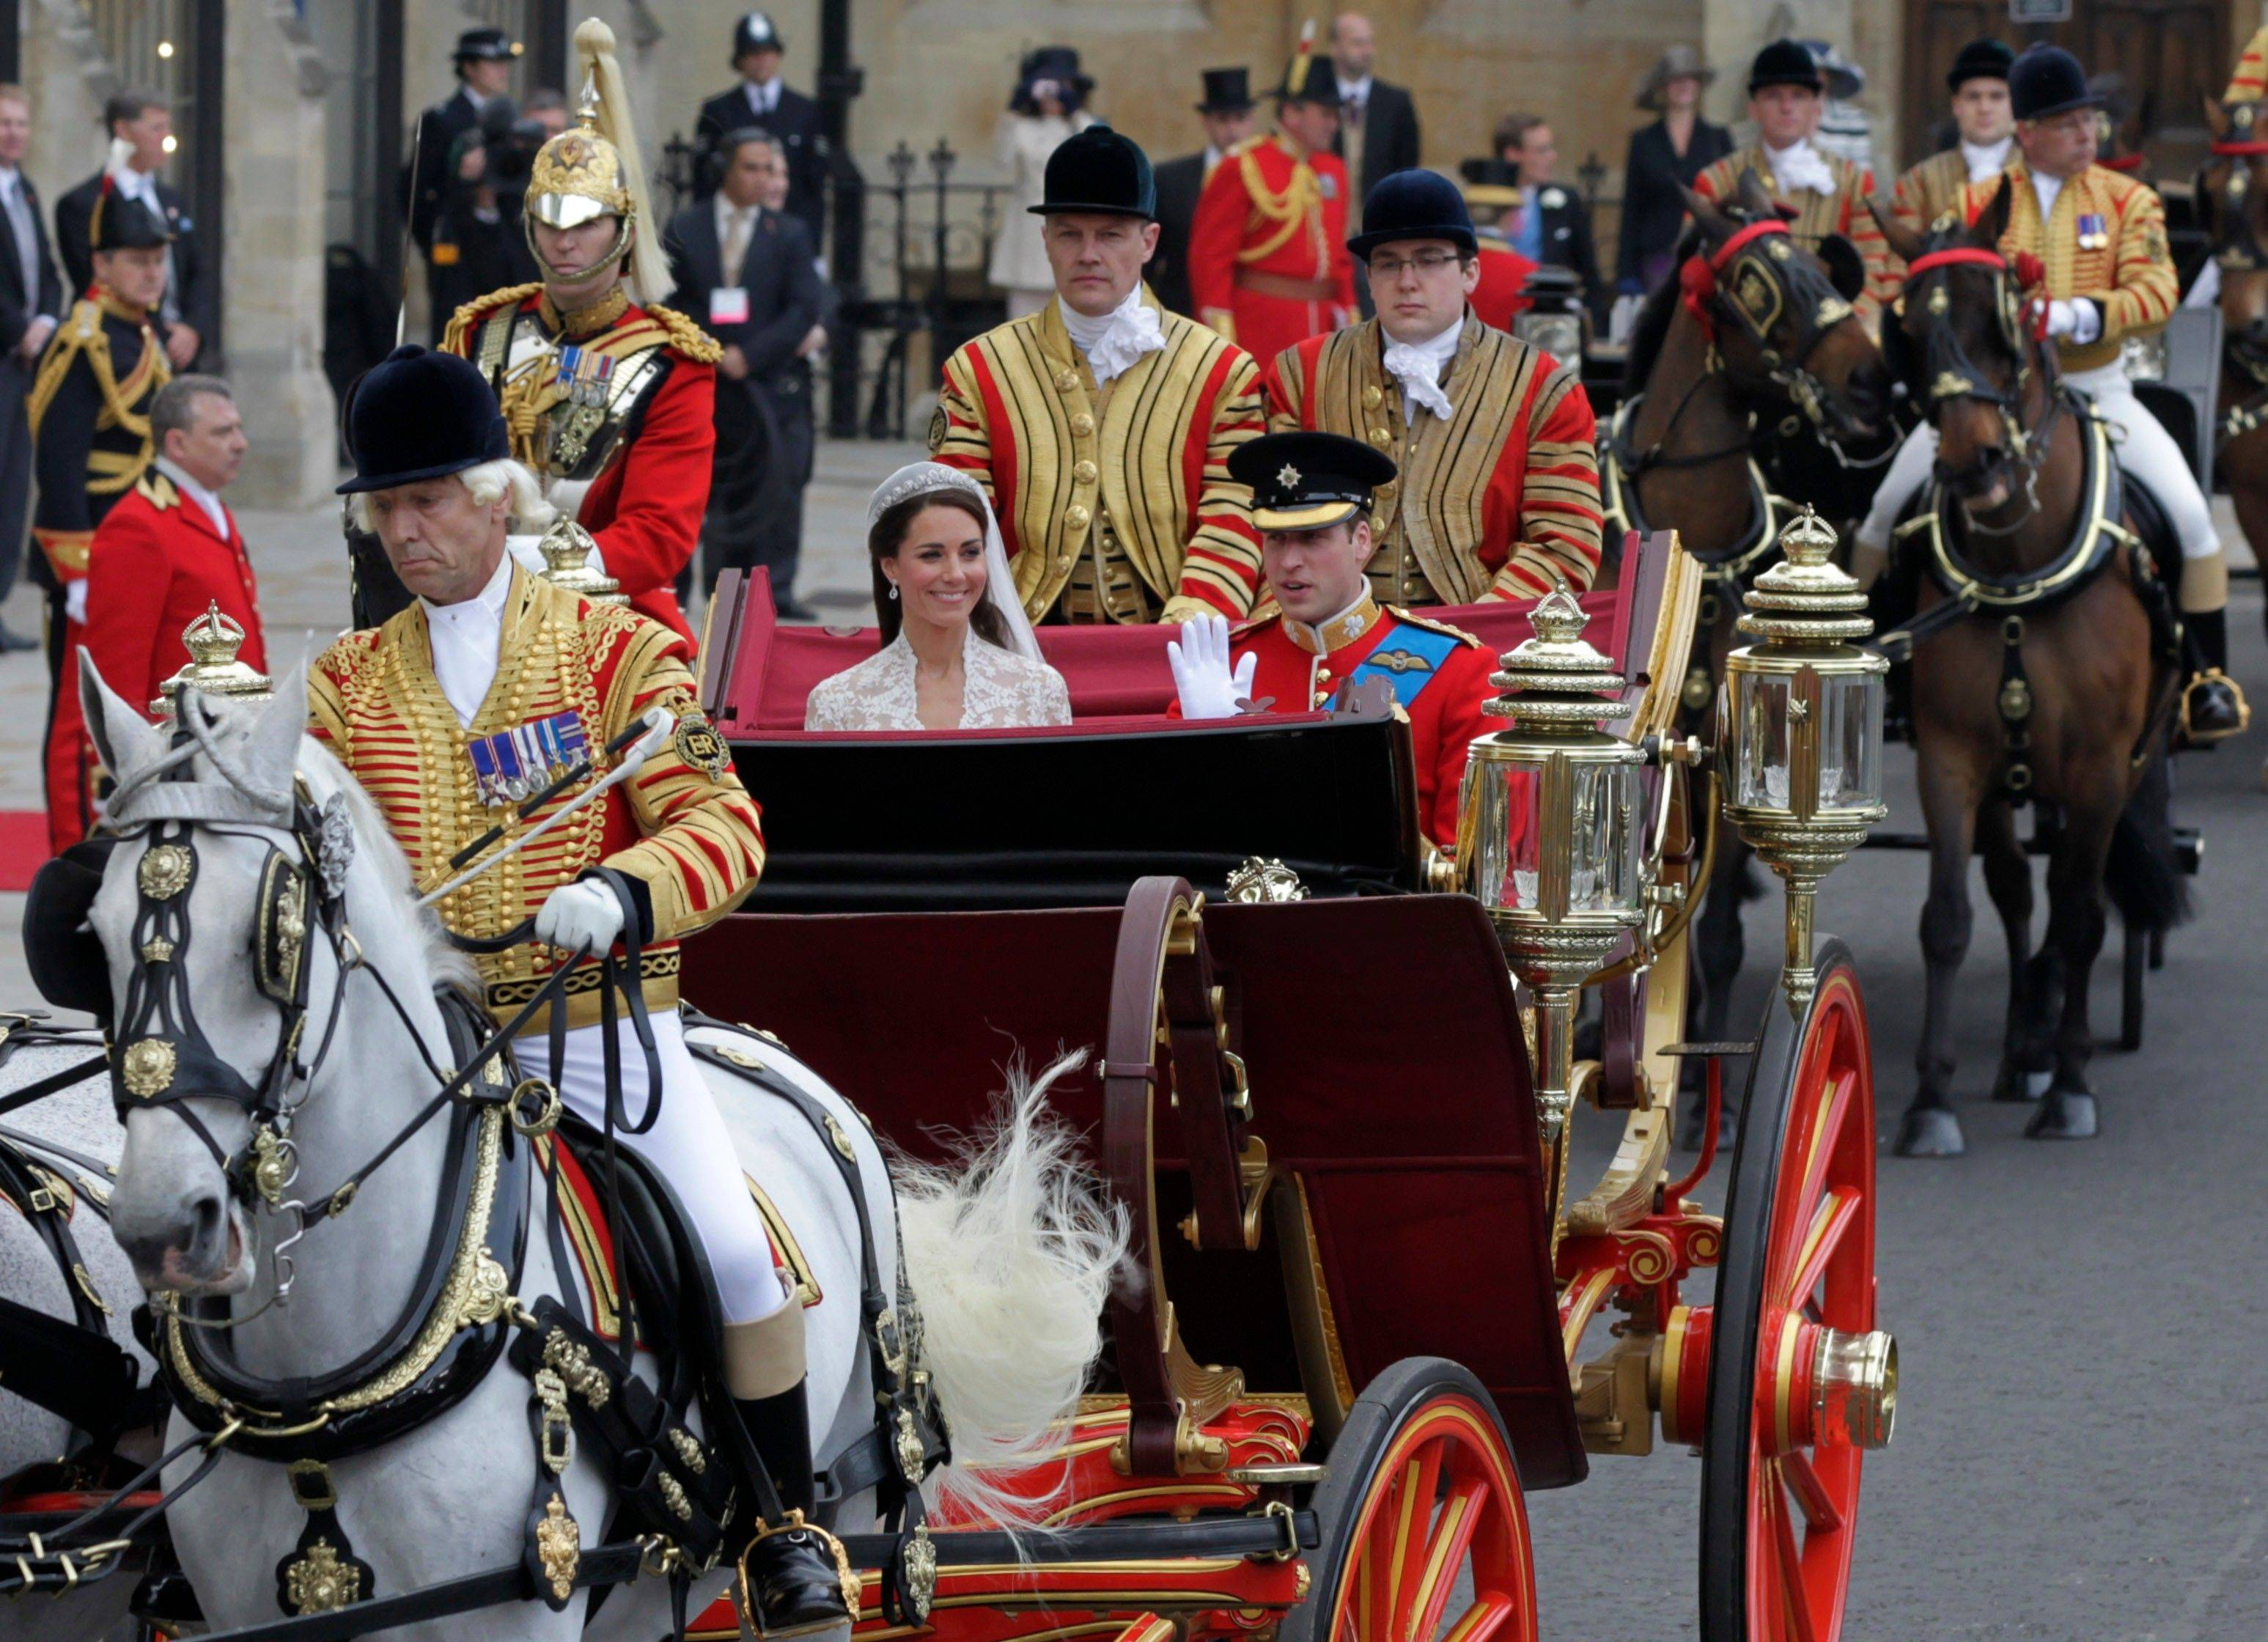 Britain's Prince William, right, and his wife Kate, Duchess of Cambridge, leave Westminster Abbey at the Royal Wedding in London Friday, April, 29, 2011.